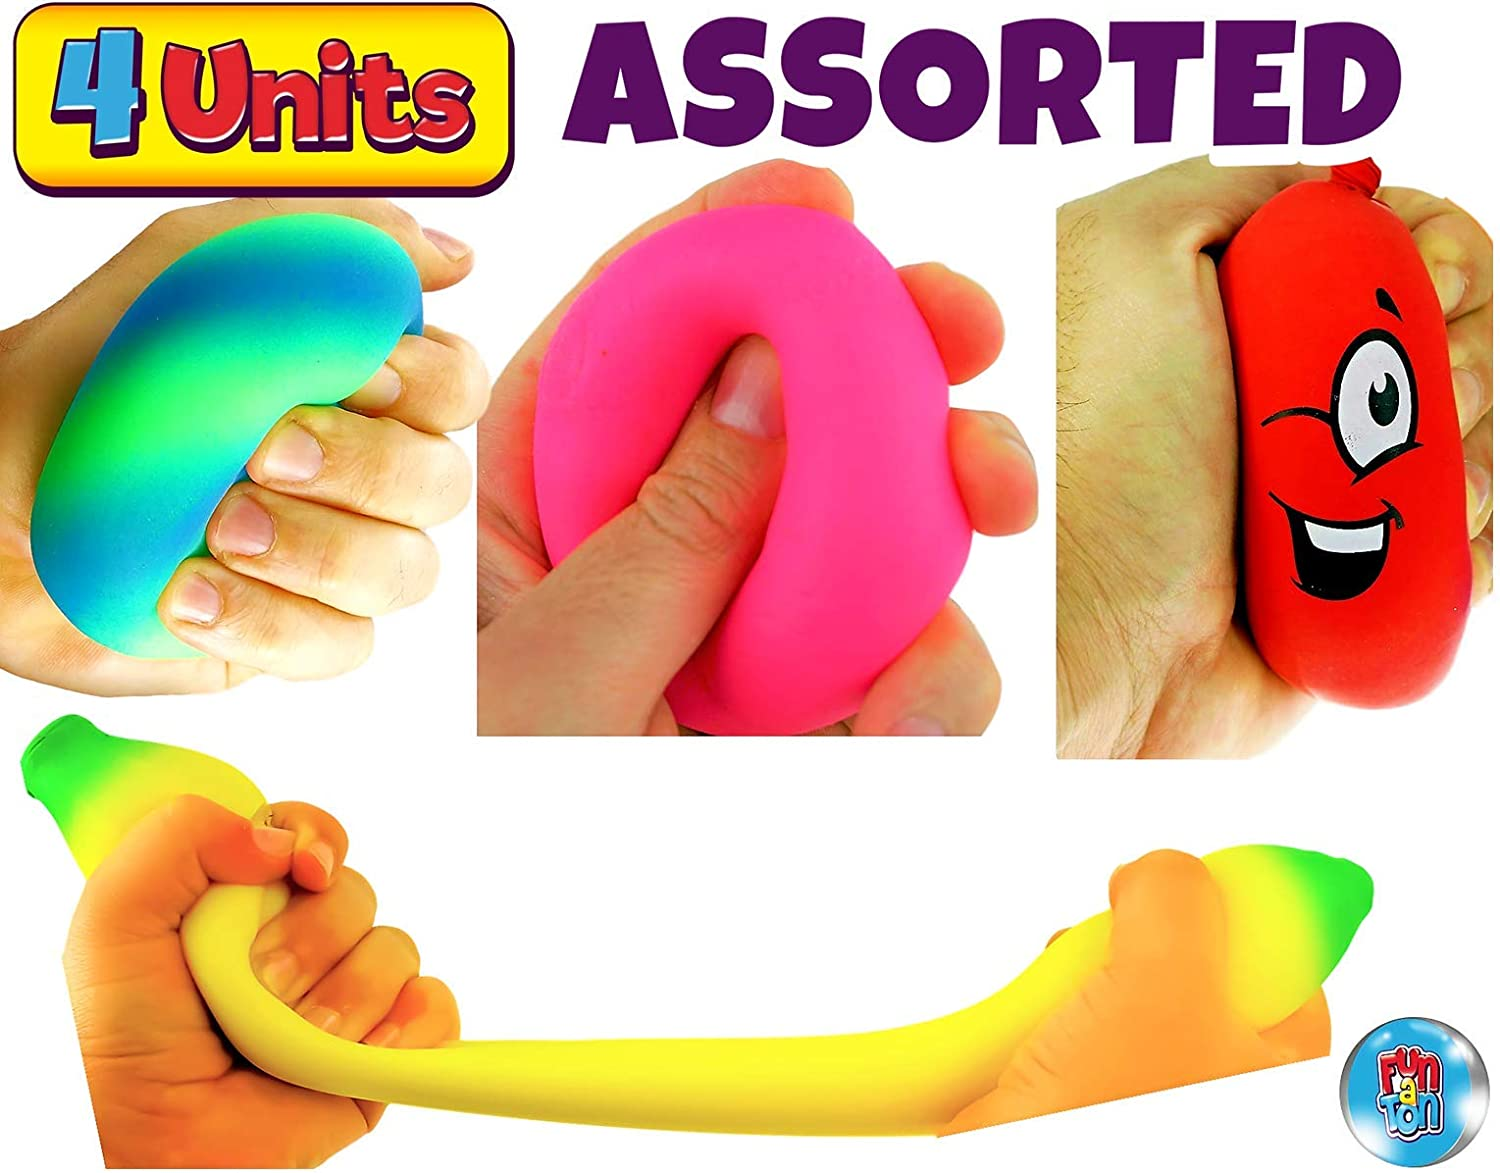 Hand Therapy JA-RU 4 Fidget Toys Kit Stress Relief Toys 3340-401-5558-5564p Stretchy Toys Stress Relief Sand Ball /& Stretchy Hot Dog Autism Toys for Kids and Adults Doug Ball Stretchy Banana